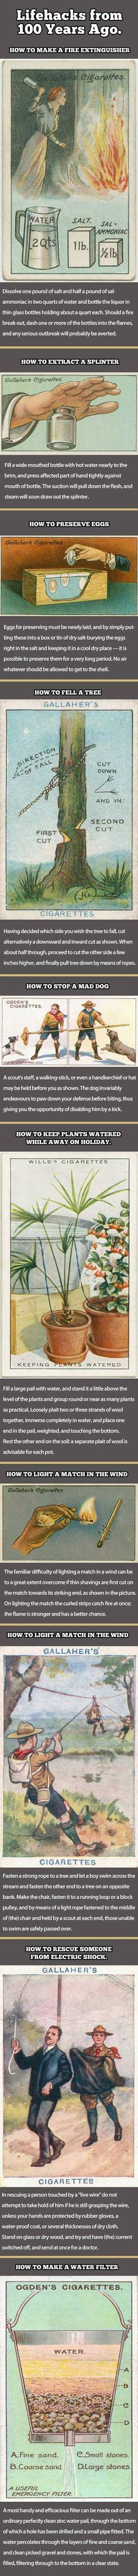 "1910s, Gallaher Ltd of Belfast & London and Ogden's Branch of the Imperial Tobacco Co printed ""How-To"" series, with clever hints for both everyday and emergency situations. From steaming out a splinter to stopping a mad dog, these cigarette cards told you the smart way to handle many of life's problems."